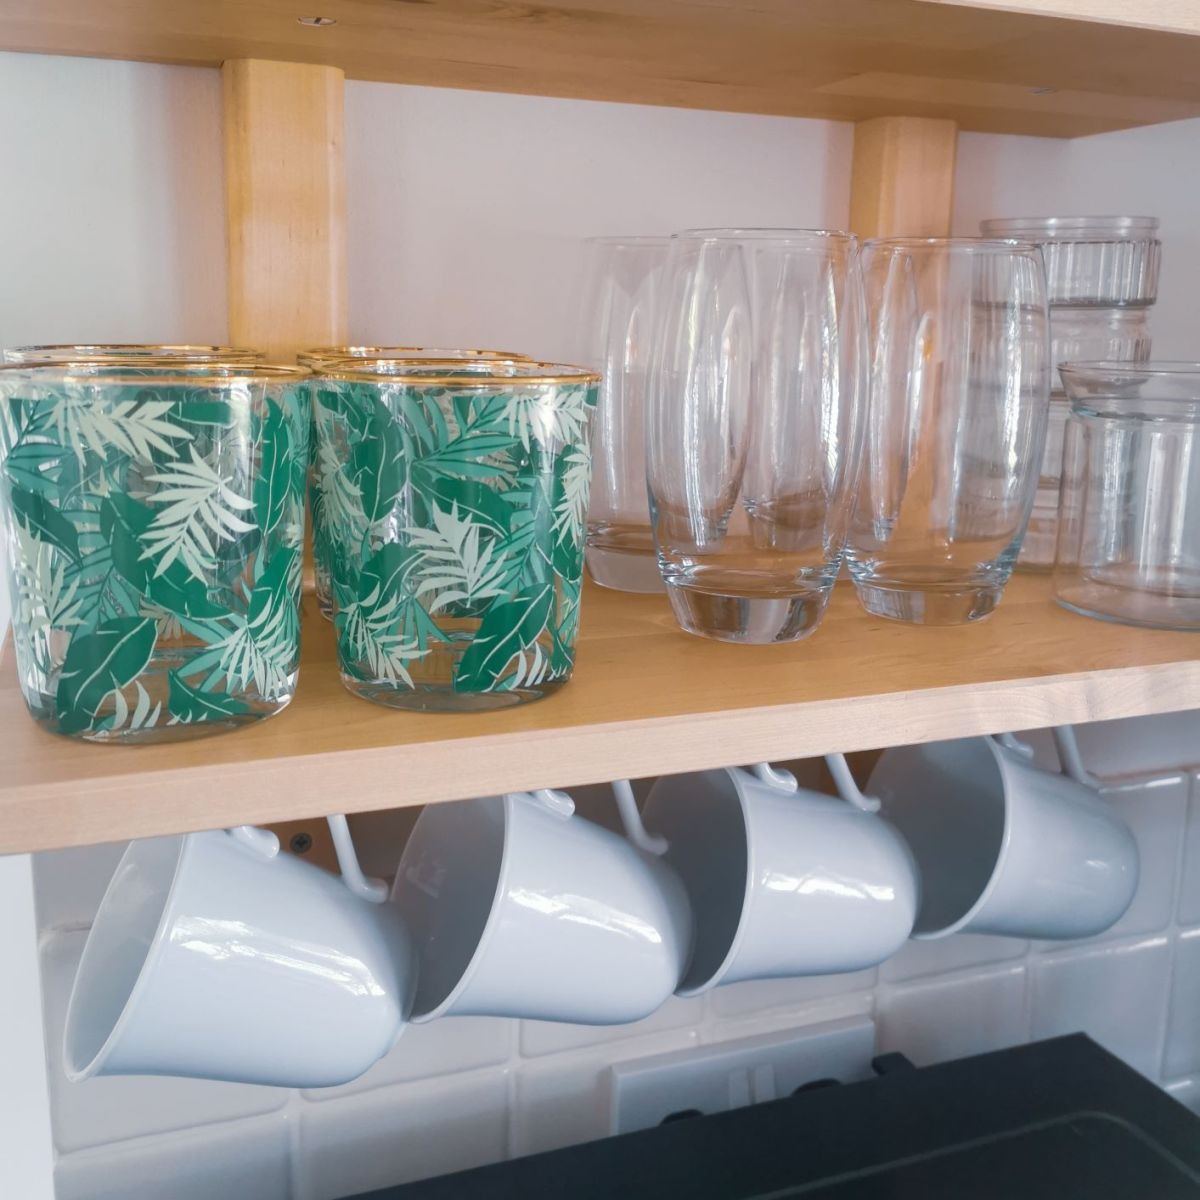 making the most of your kitchen shelves